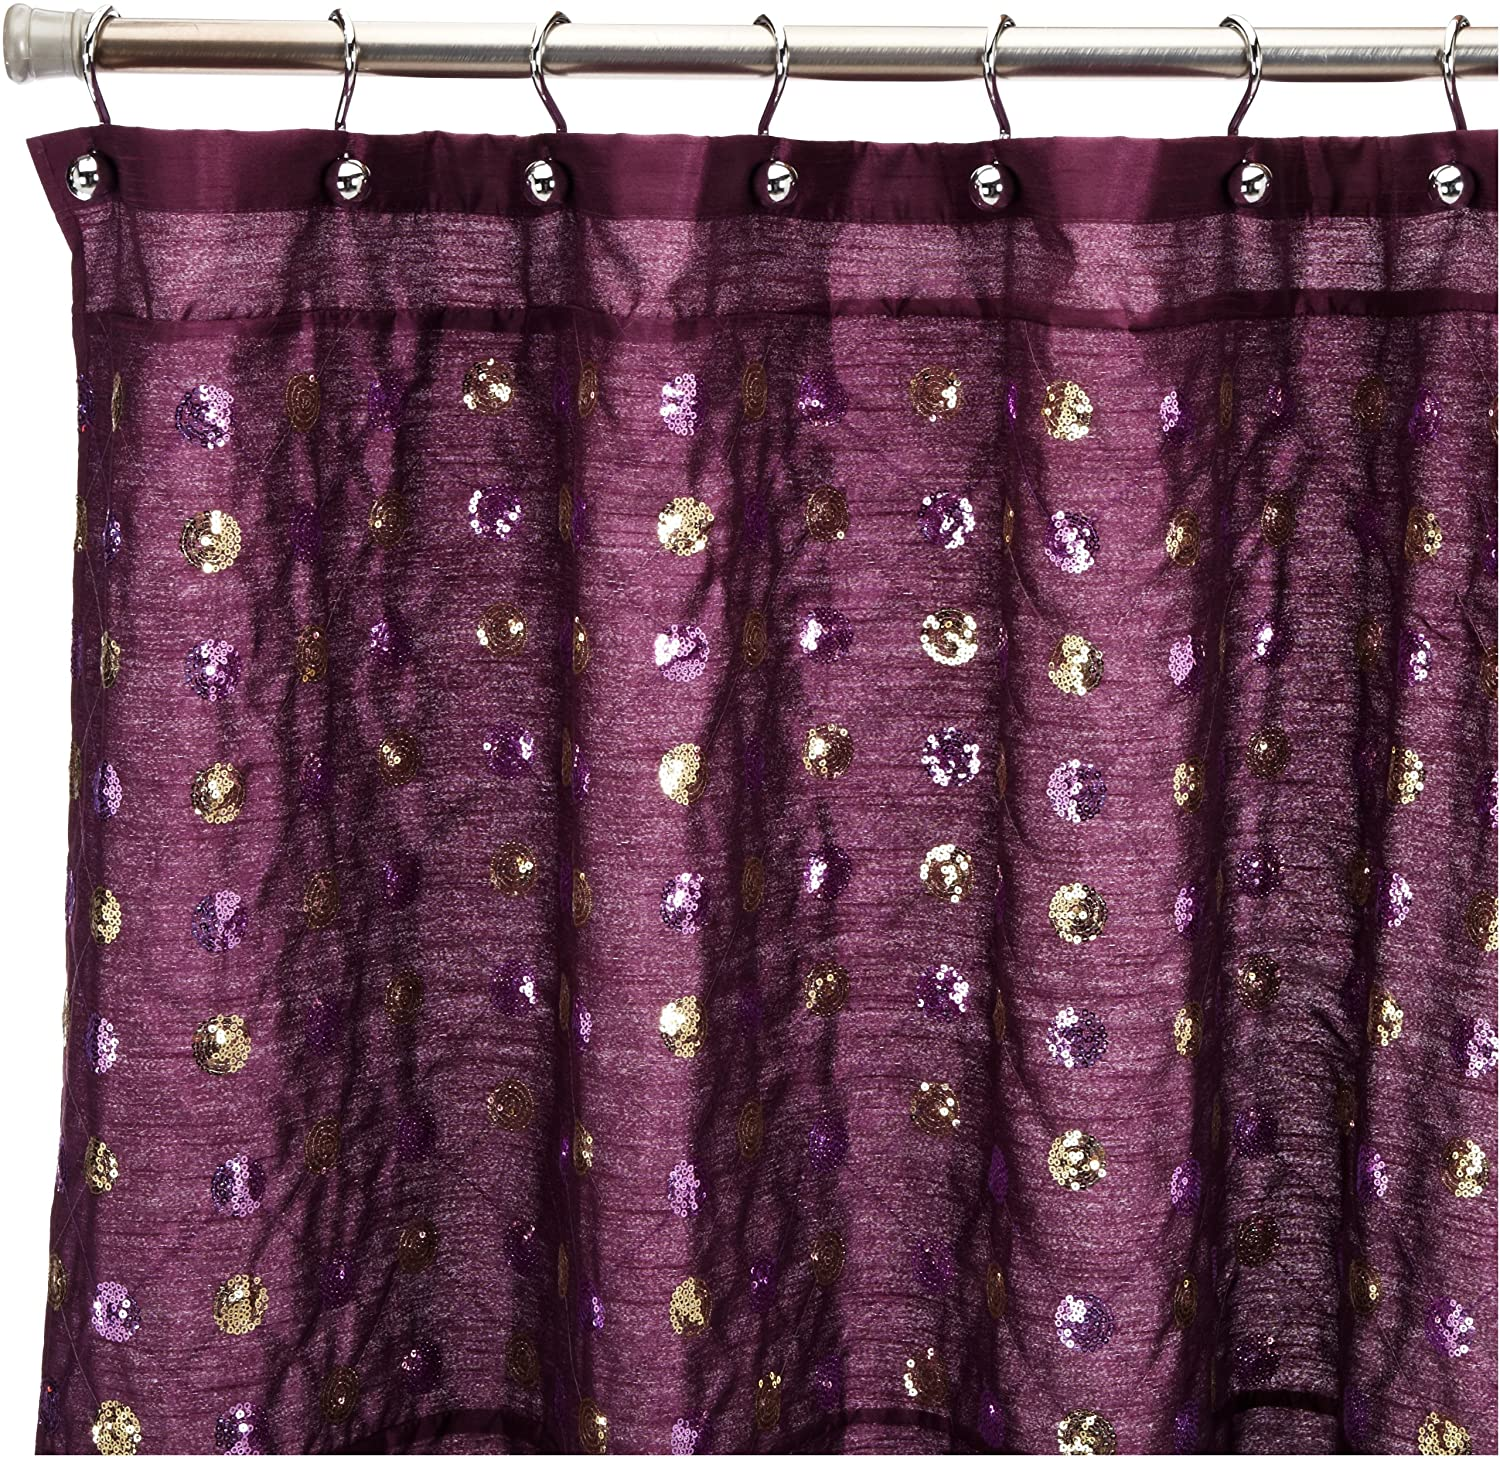 purple and gold shower curtain. Amazon com  Popular Bath Sequins Shower Curtain Purple Home Kitchen